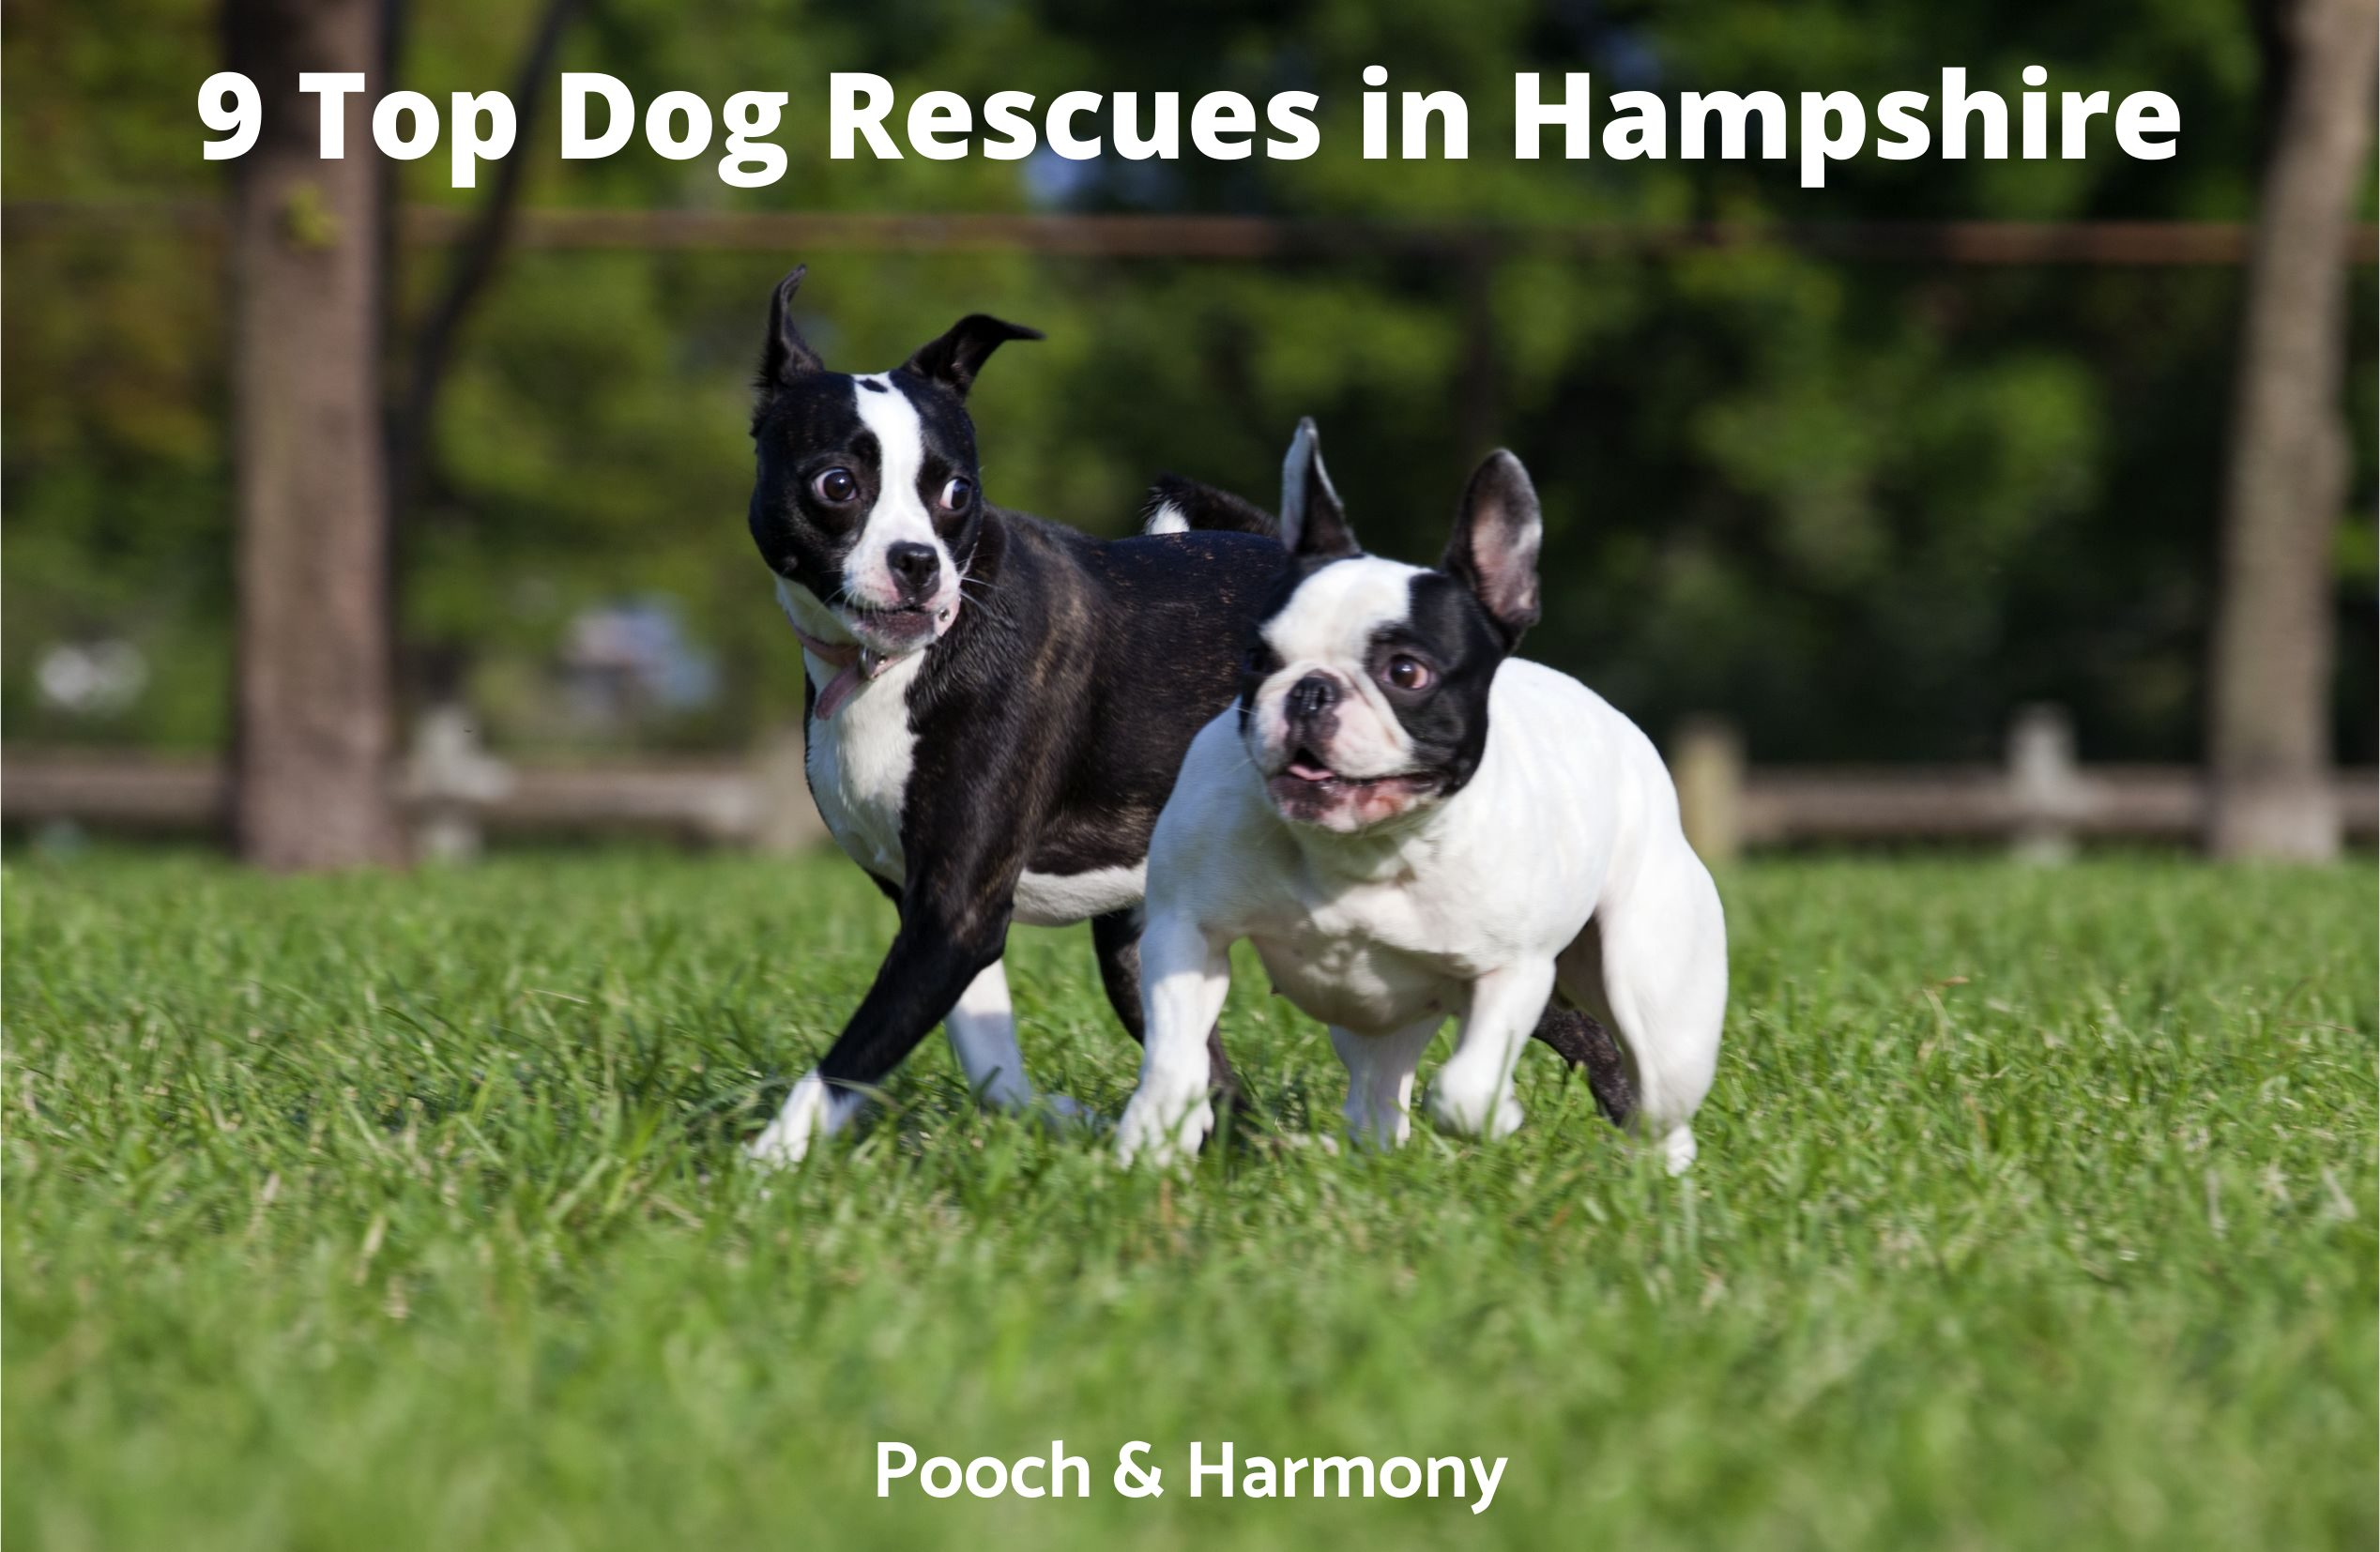 Dog Rescues in Hampshire